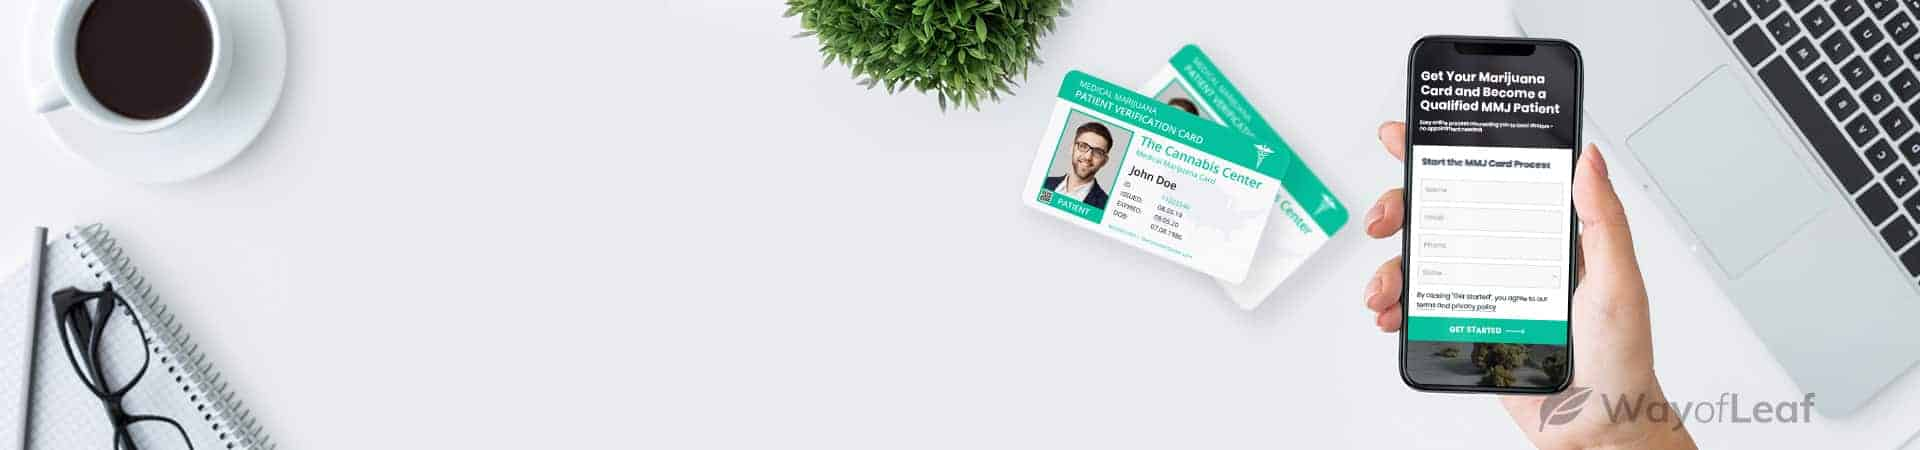 3 Ways To Get A Medical Marijuana Card Online In Minutes